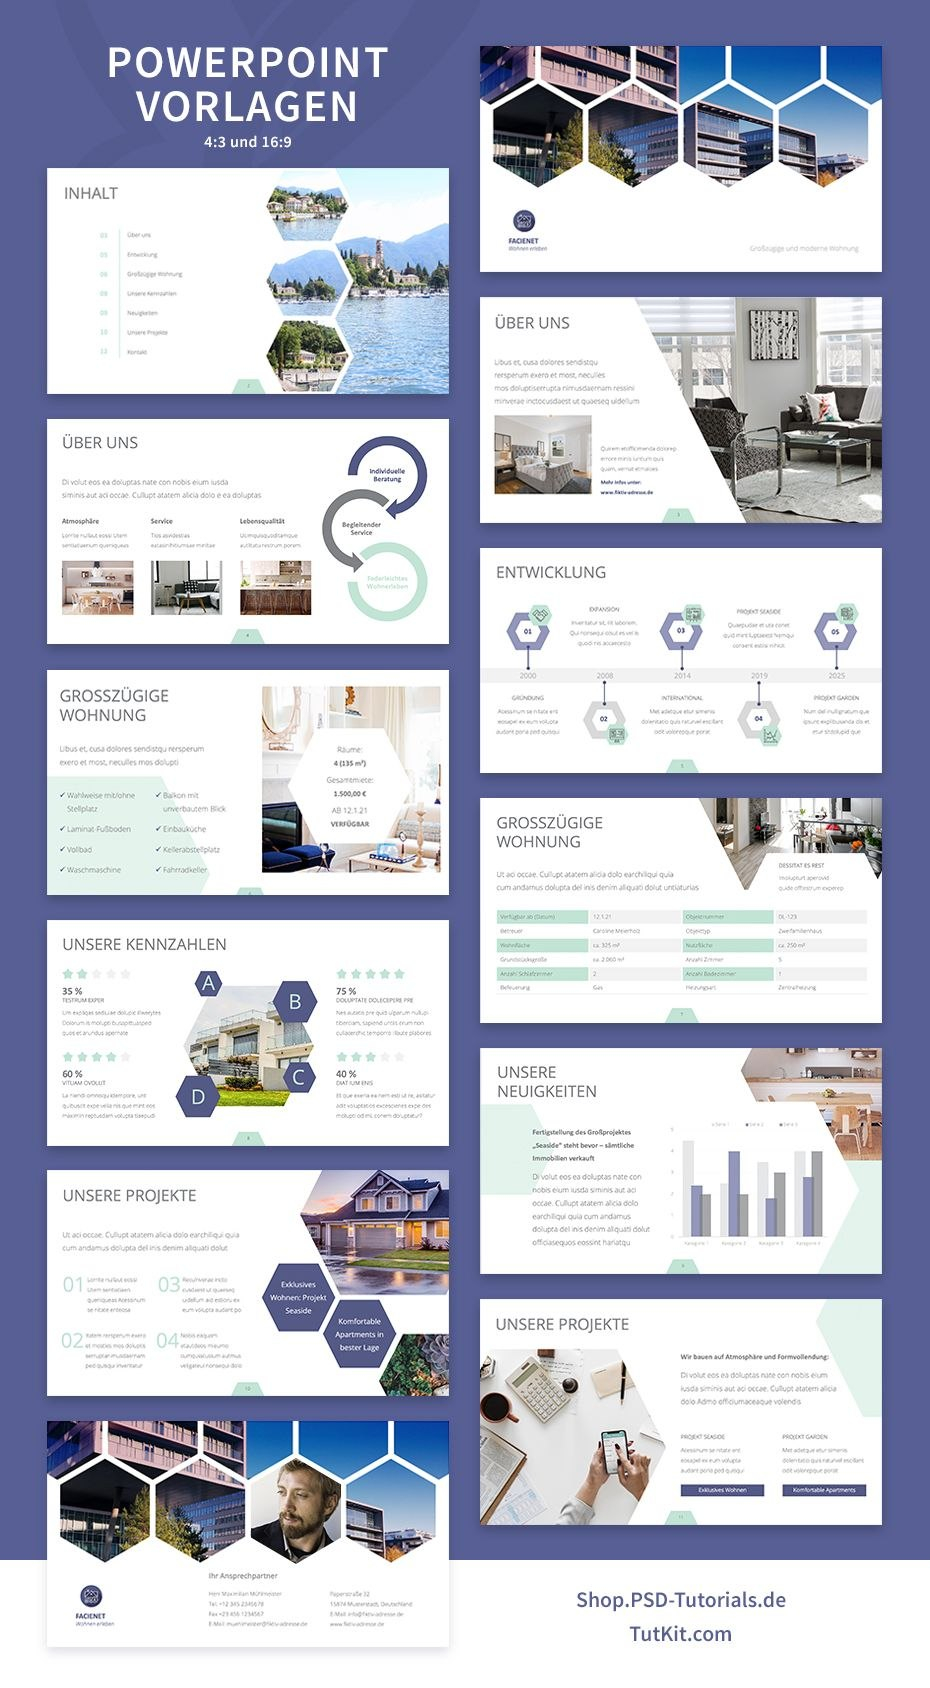 Designstarke Vorlagen Fur Immobilienfirmen Und Architekturburos For Unive Powerpoint Presentation Design Presentation Slides Design Powerpoint Design Templates